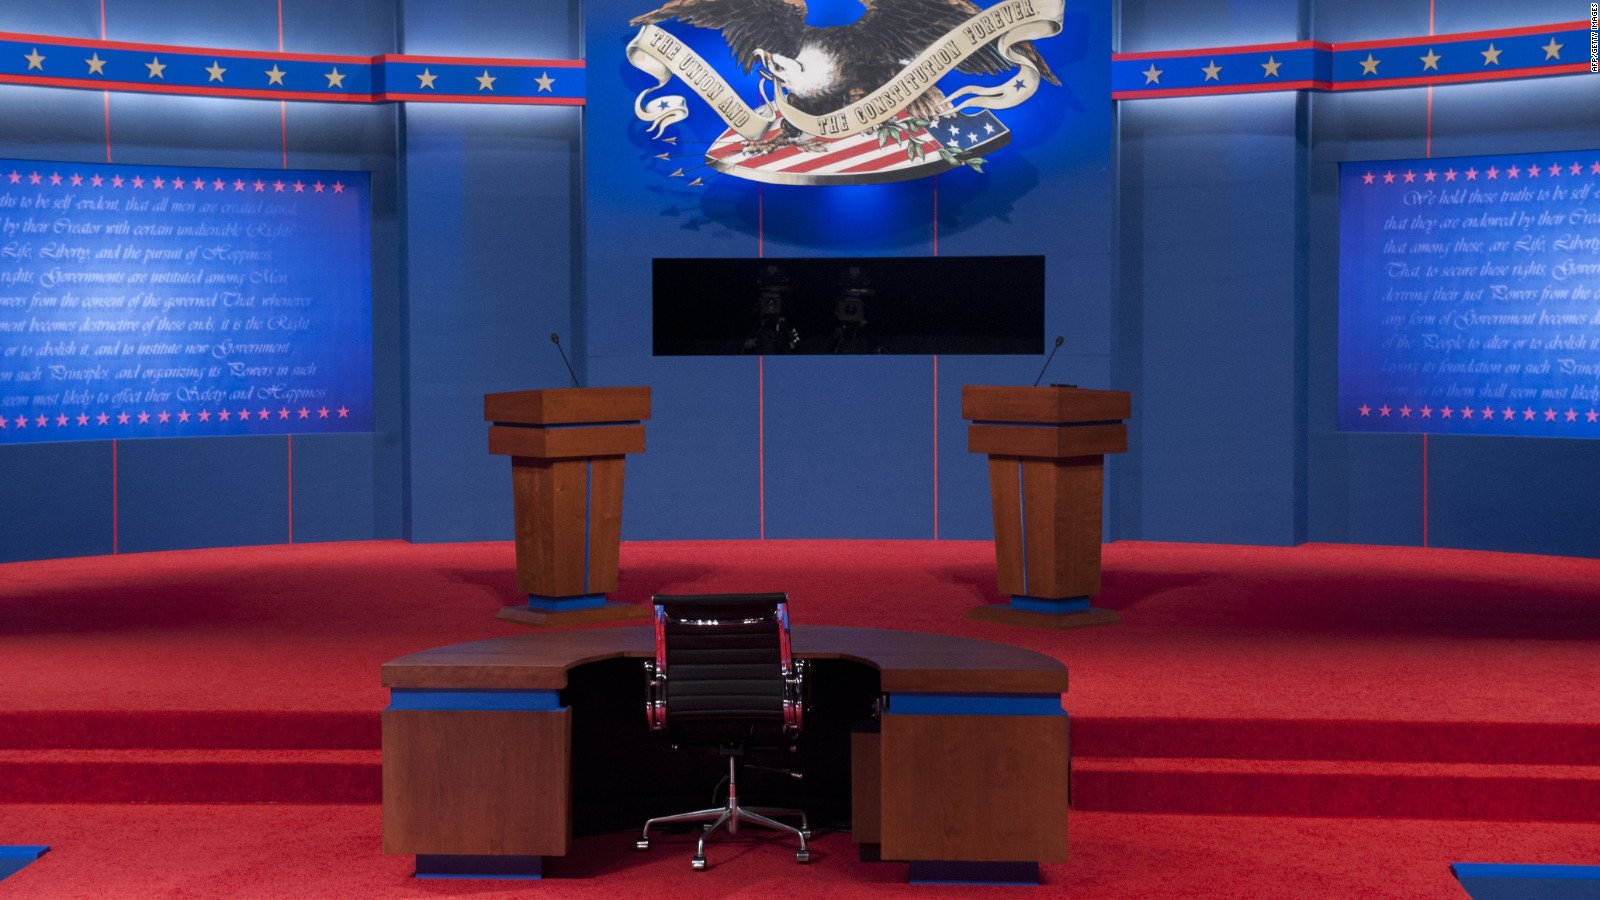 Presidential debate: What to watch for in the last Clinton-Trump face-off - CNNPolitics